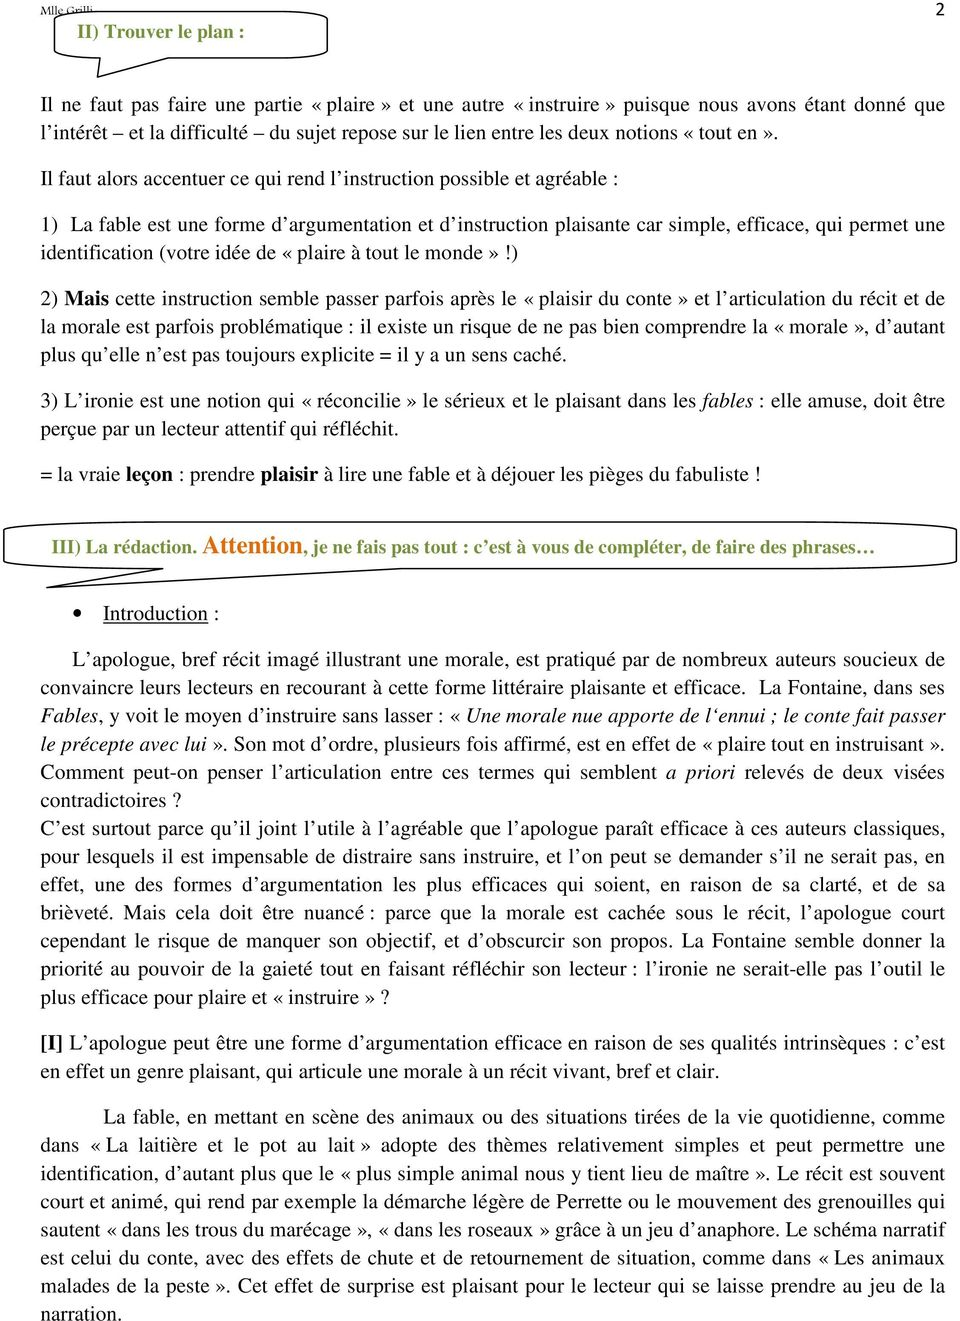 l apologue est il une forme argumentative efficace dissertation